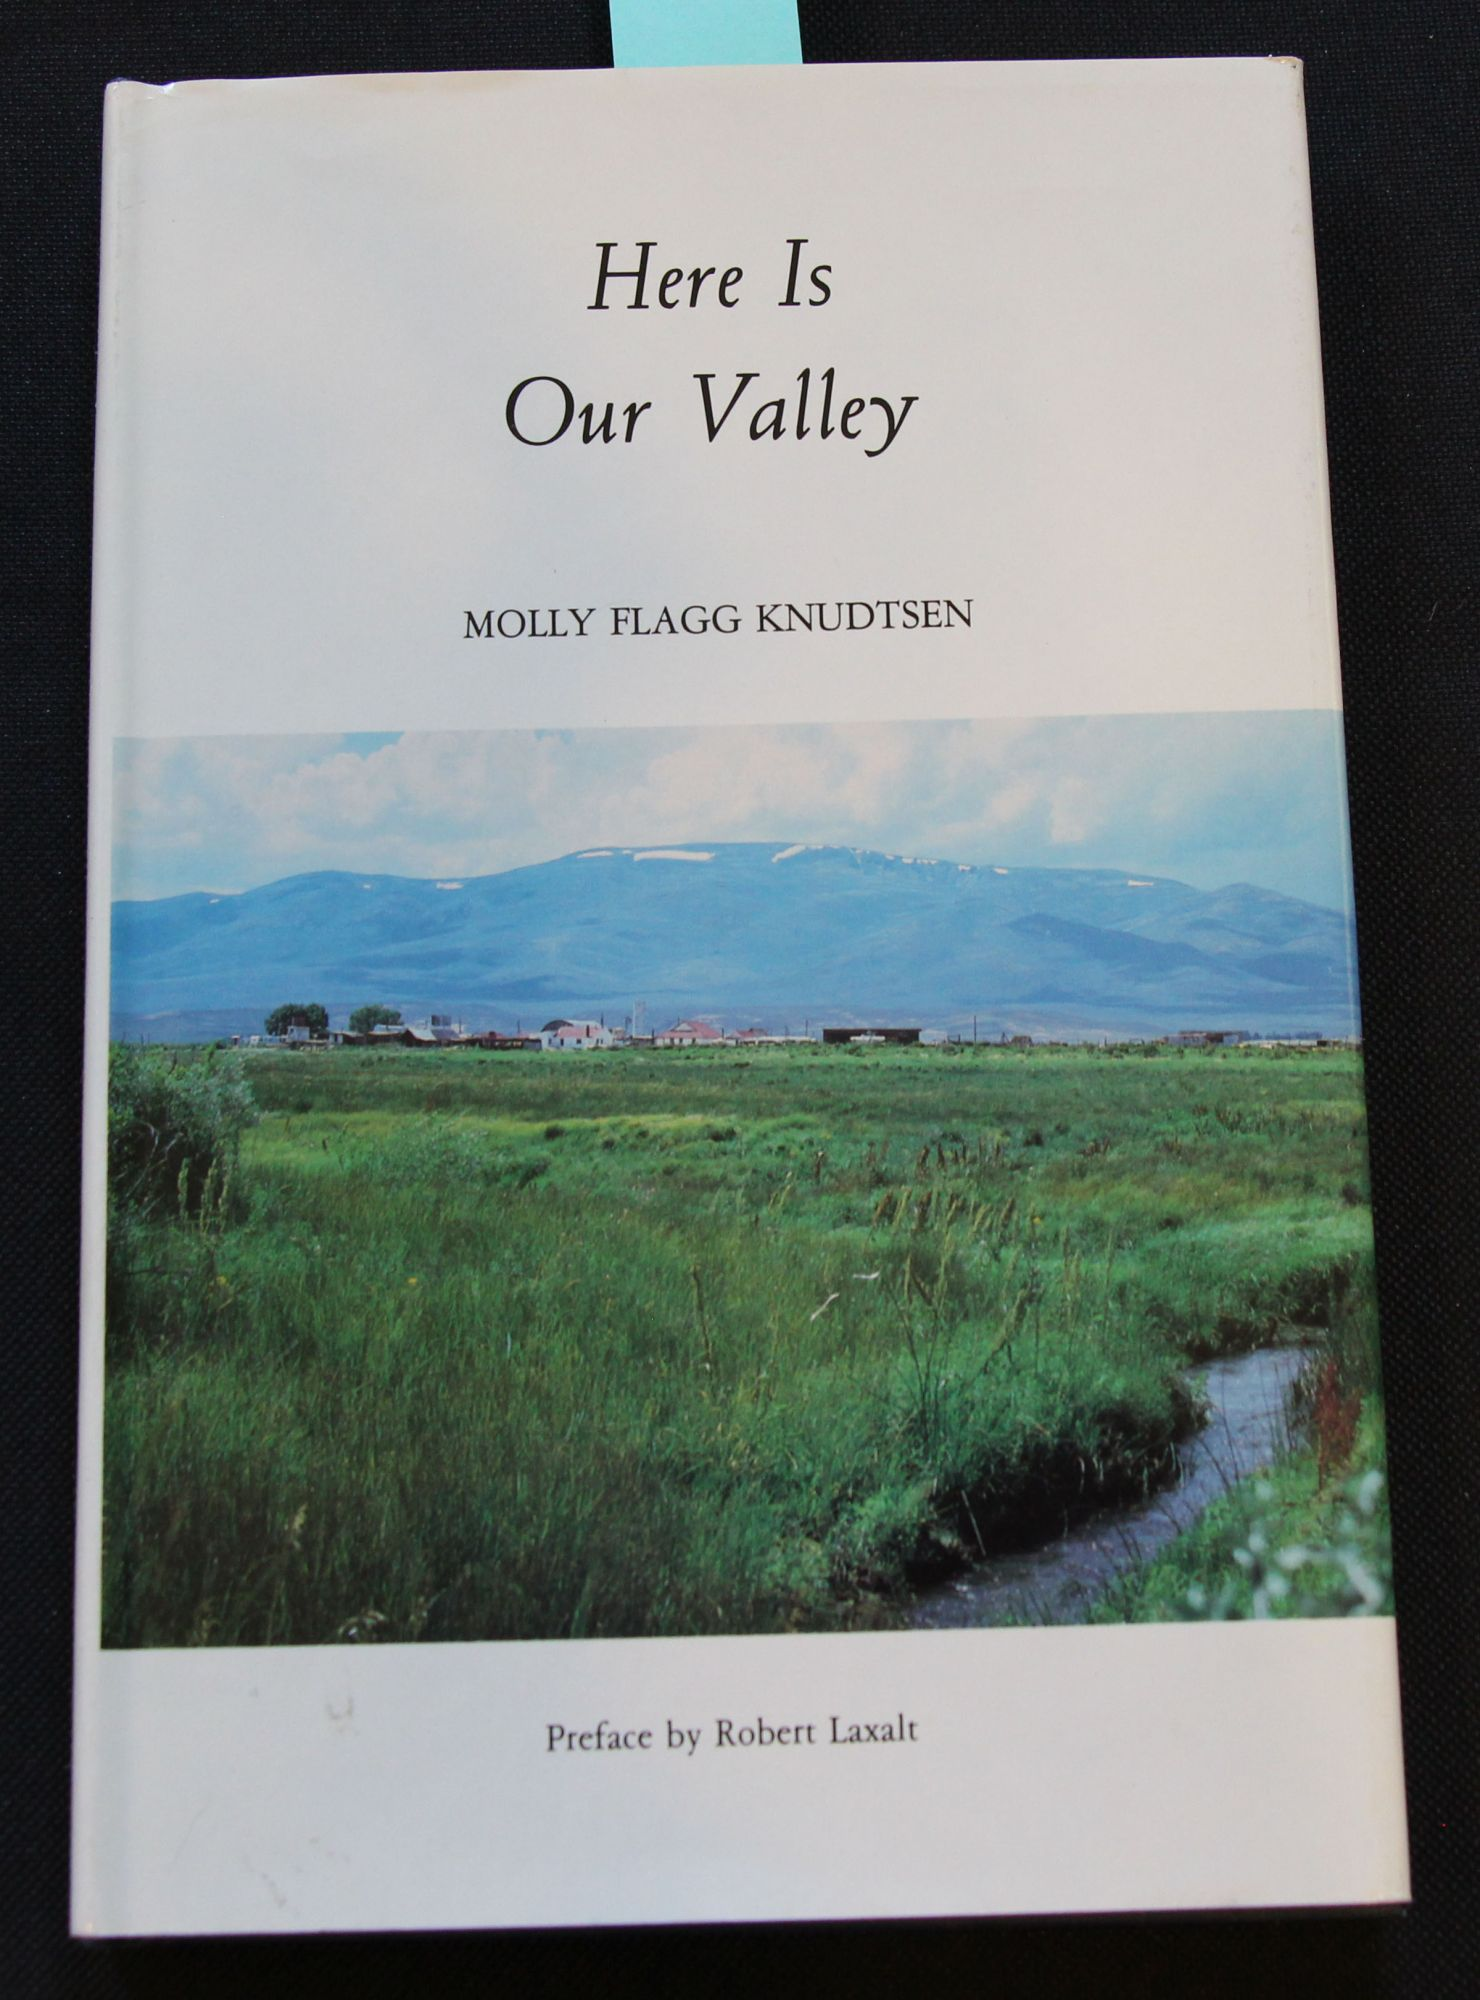 Here is Our Valley Preface by Robert Laxalt